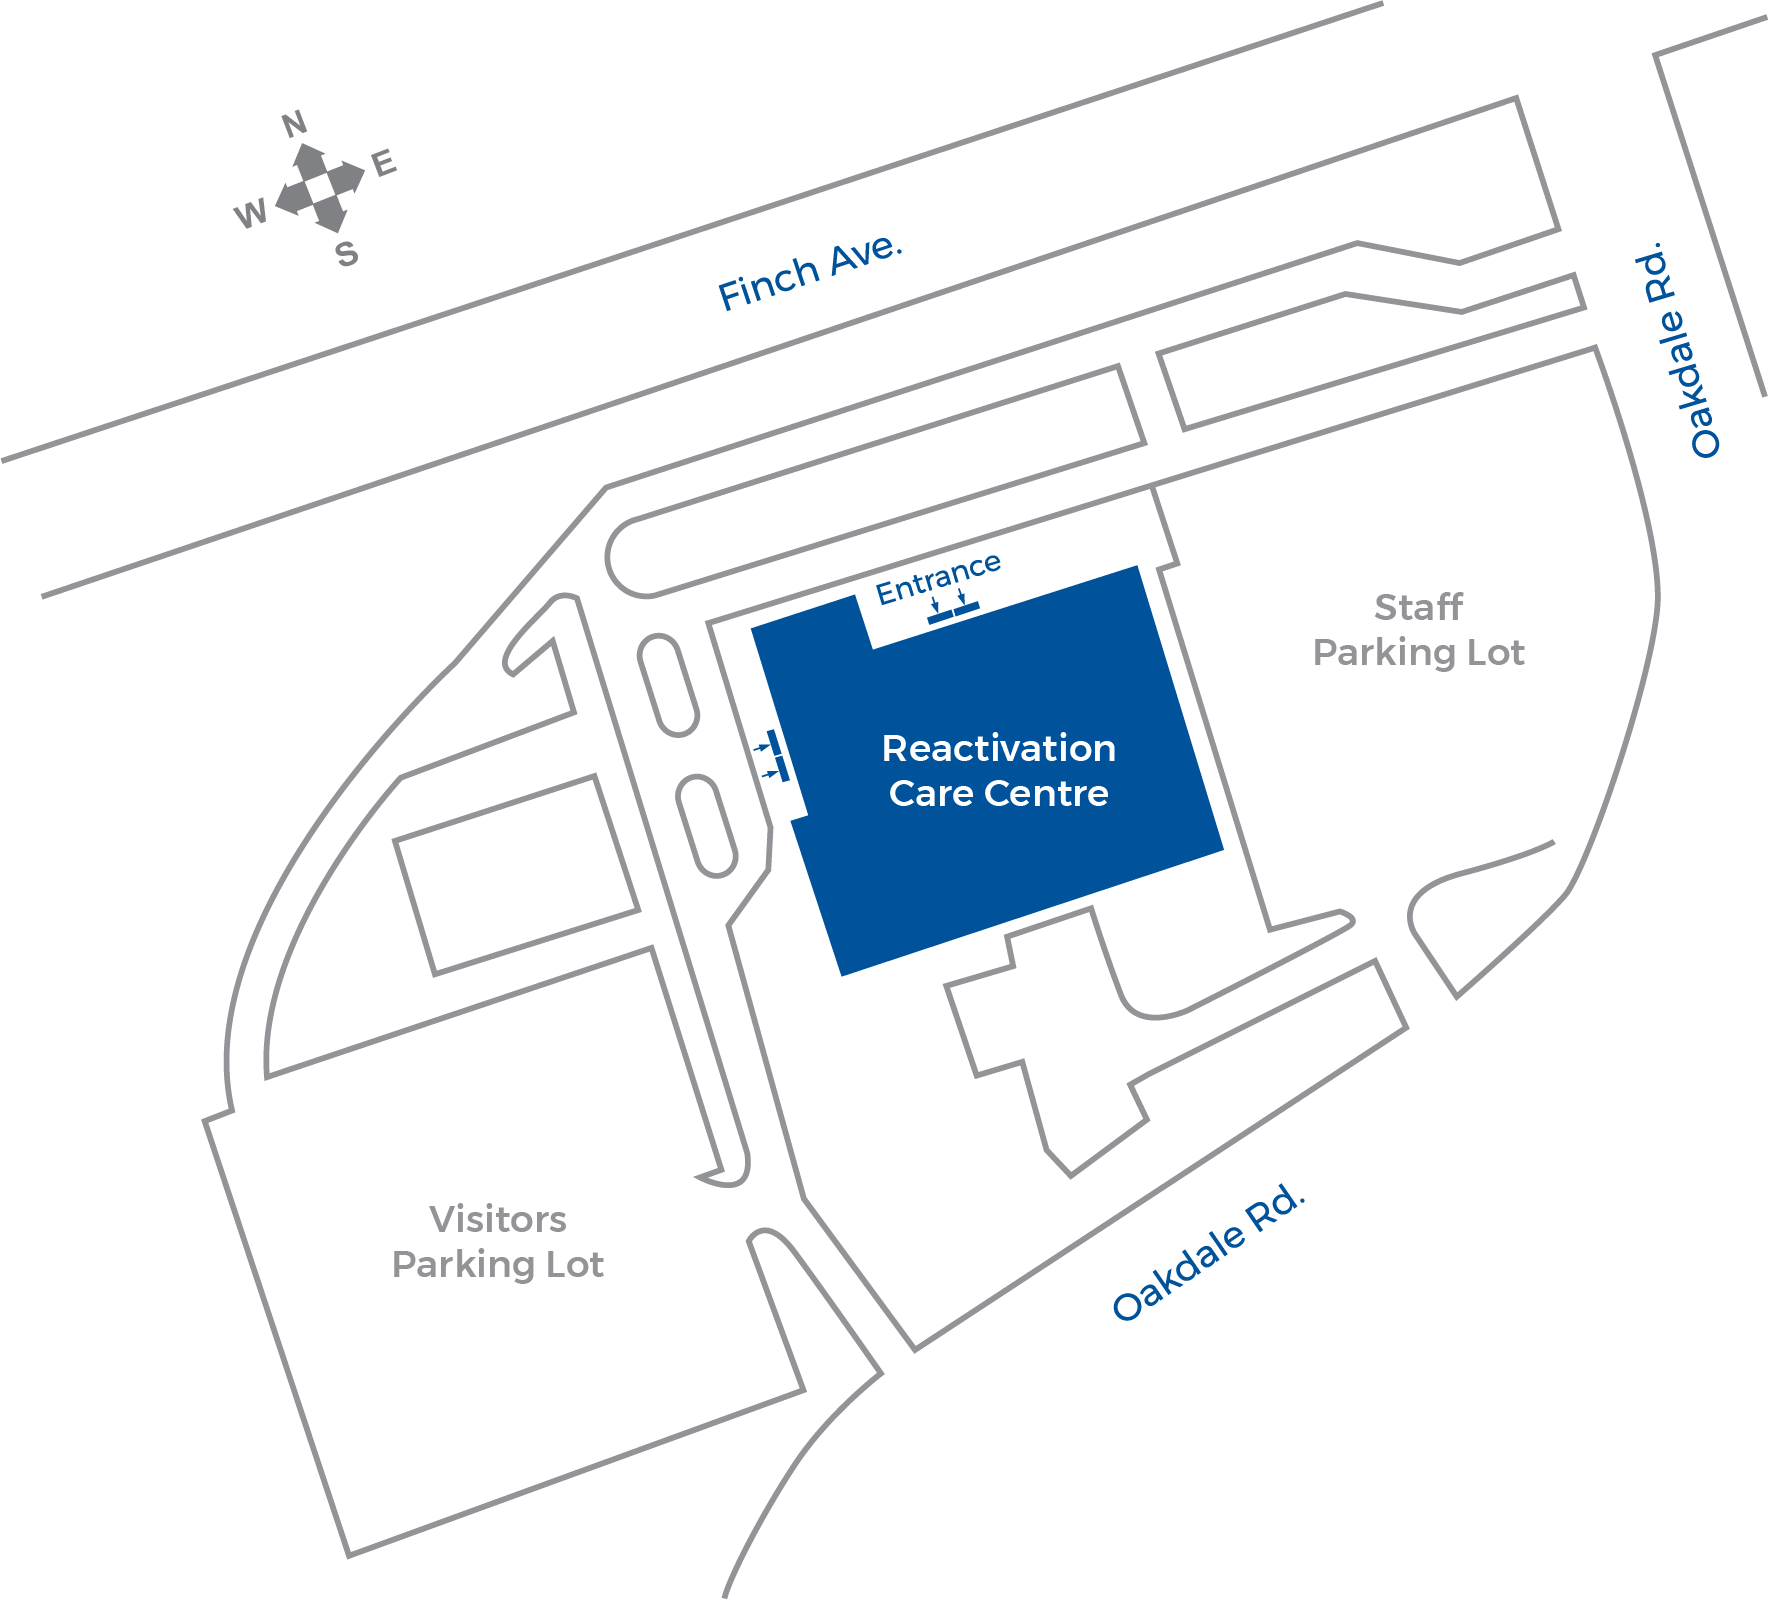 Illustration of the Reactivation Care Centre Map